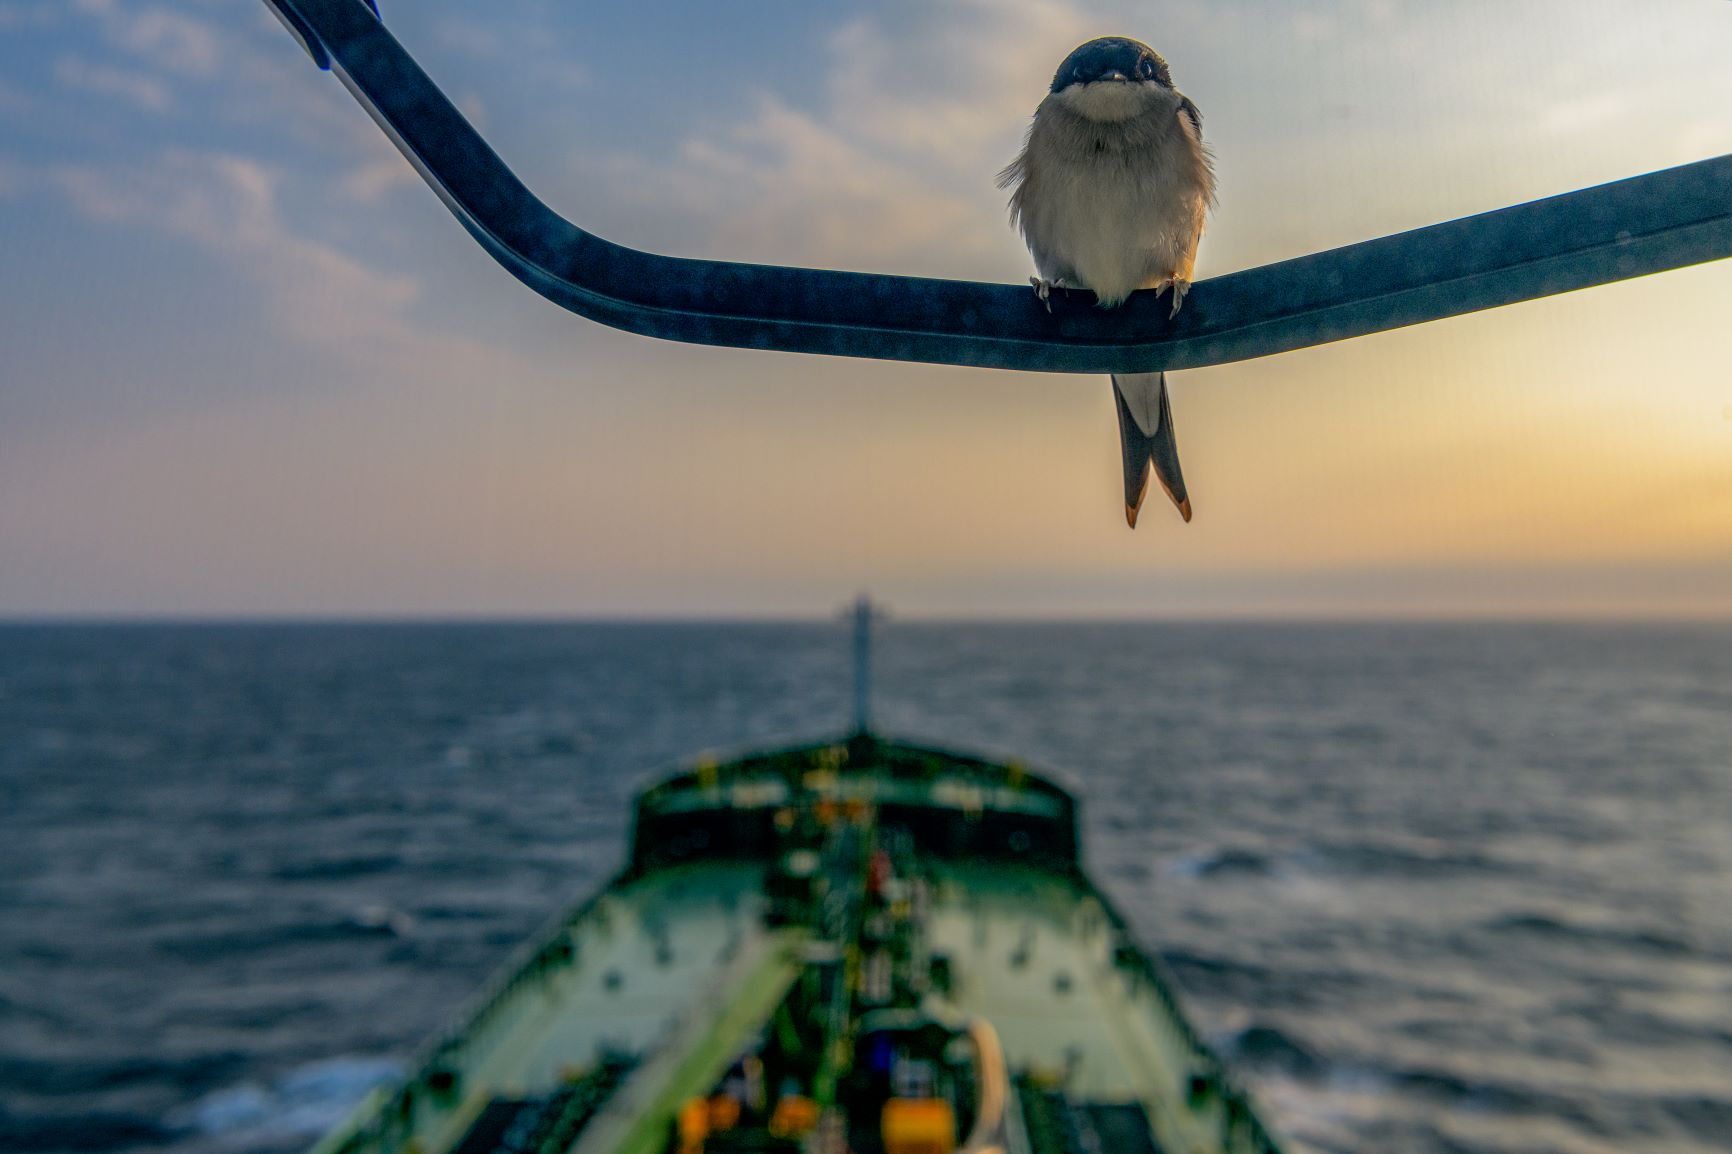 Bird on tanker